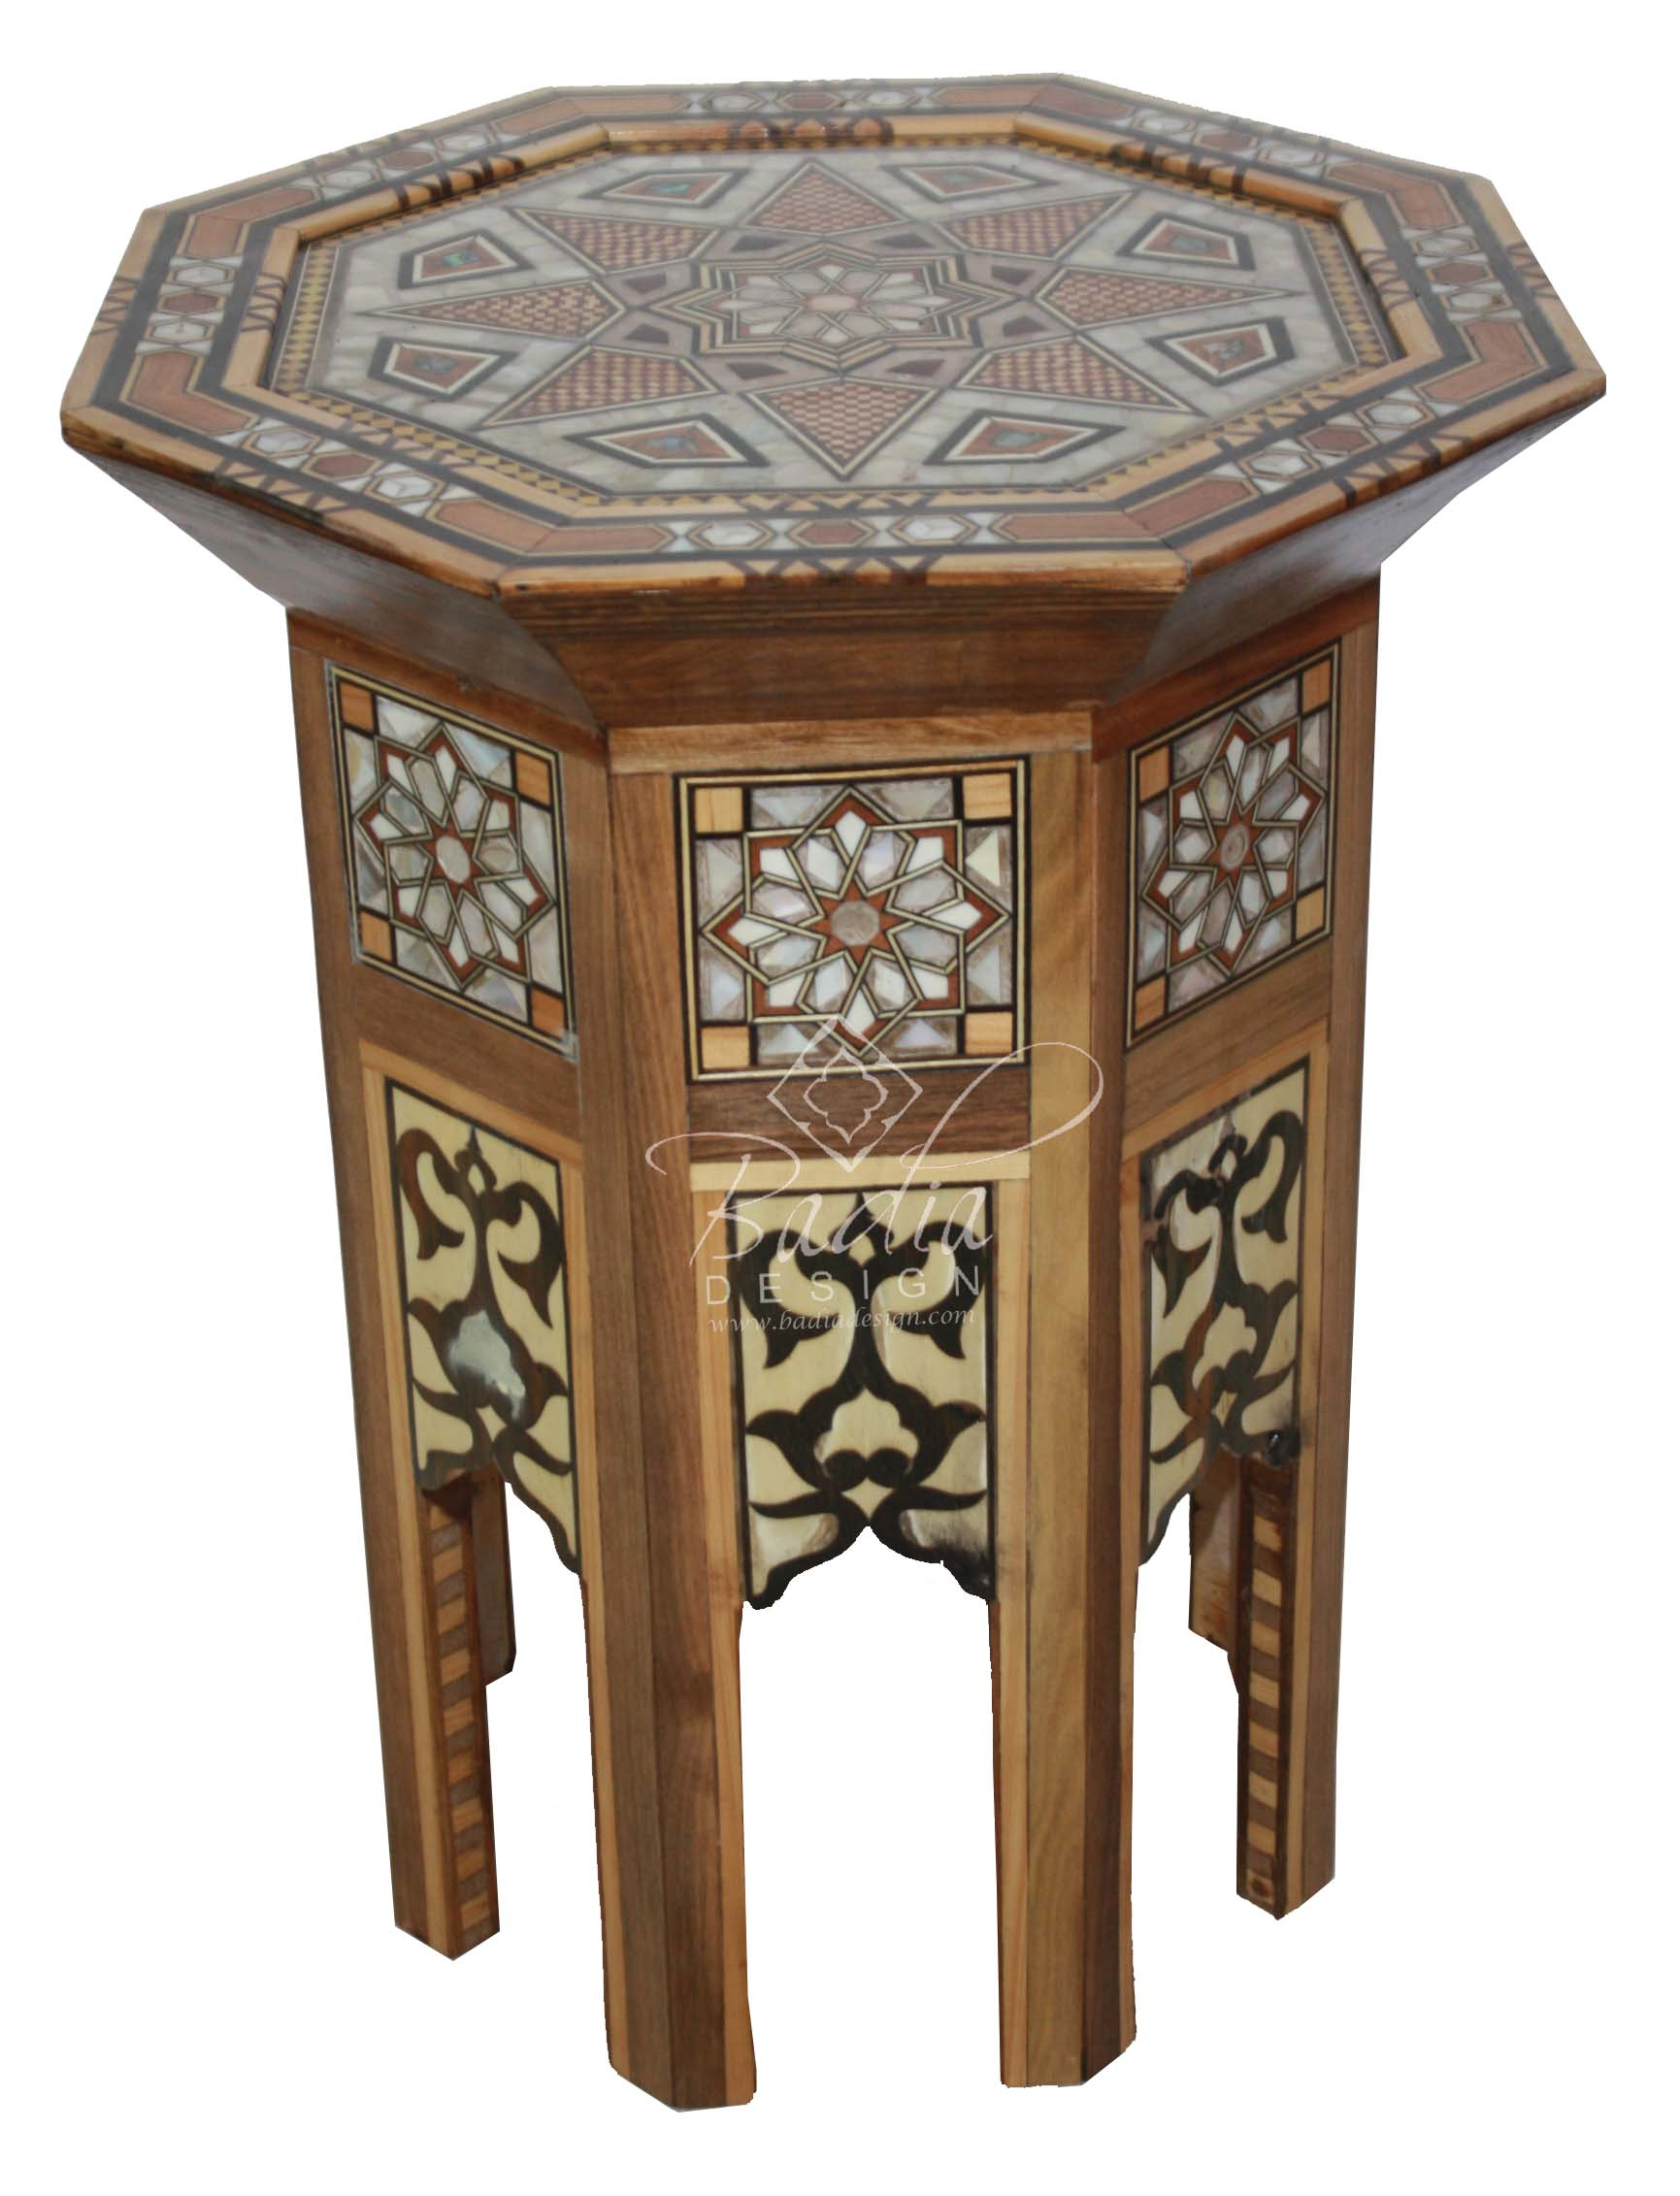 syrian-design-inlaid-side-table-mop-st097-1.jpg